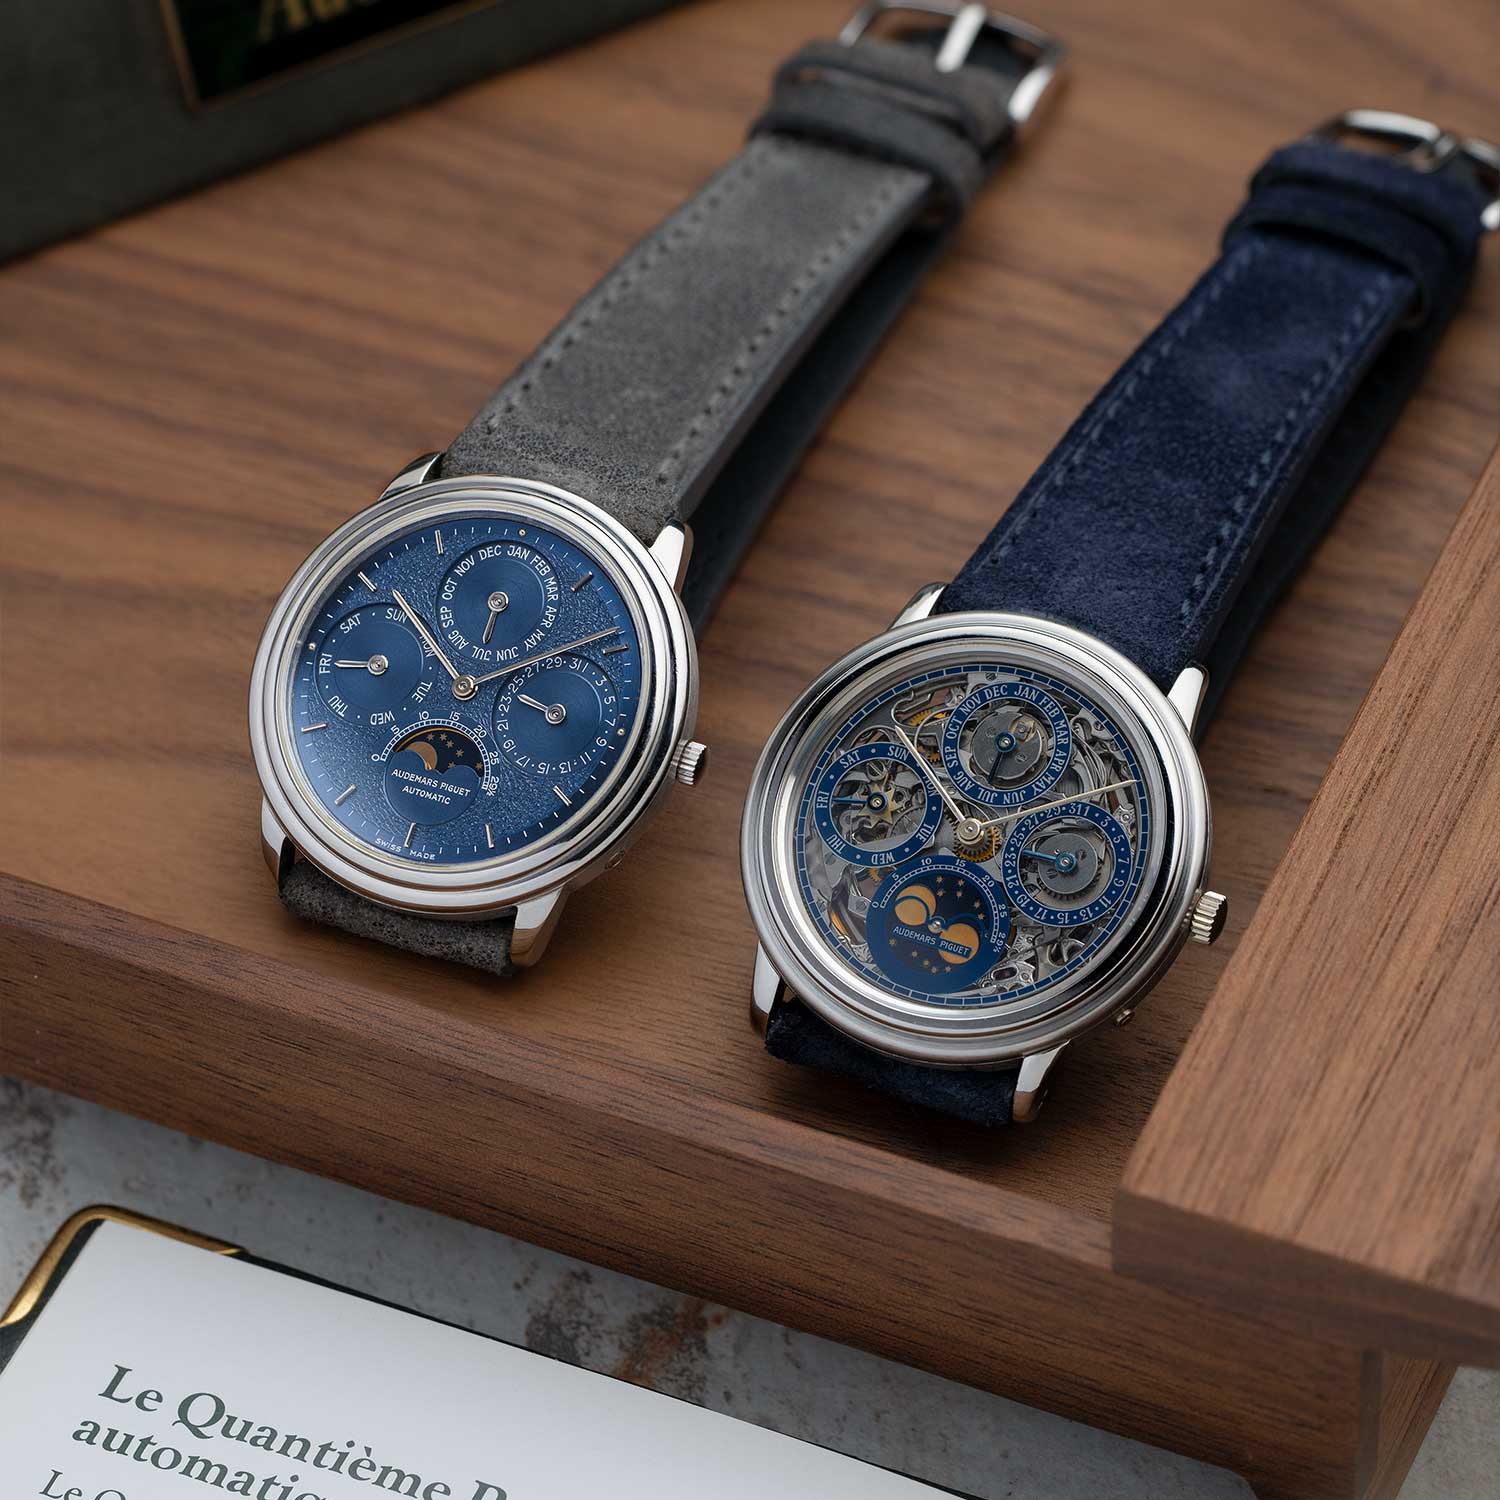 """Tom's ref. 25657PT """"Tuscan"""" dial seen on the left and, also his, the ref. 5558PT """"Skeleton"""" dial to the right; some grade A examples of creative expressions of perpetual calendar watches that were birthed from the creation of the 5548 (Image: Photo and watches, property of Pygmalion Gallery)"""